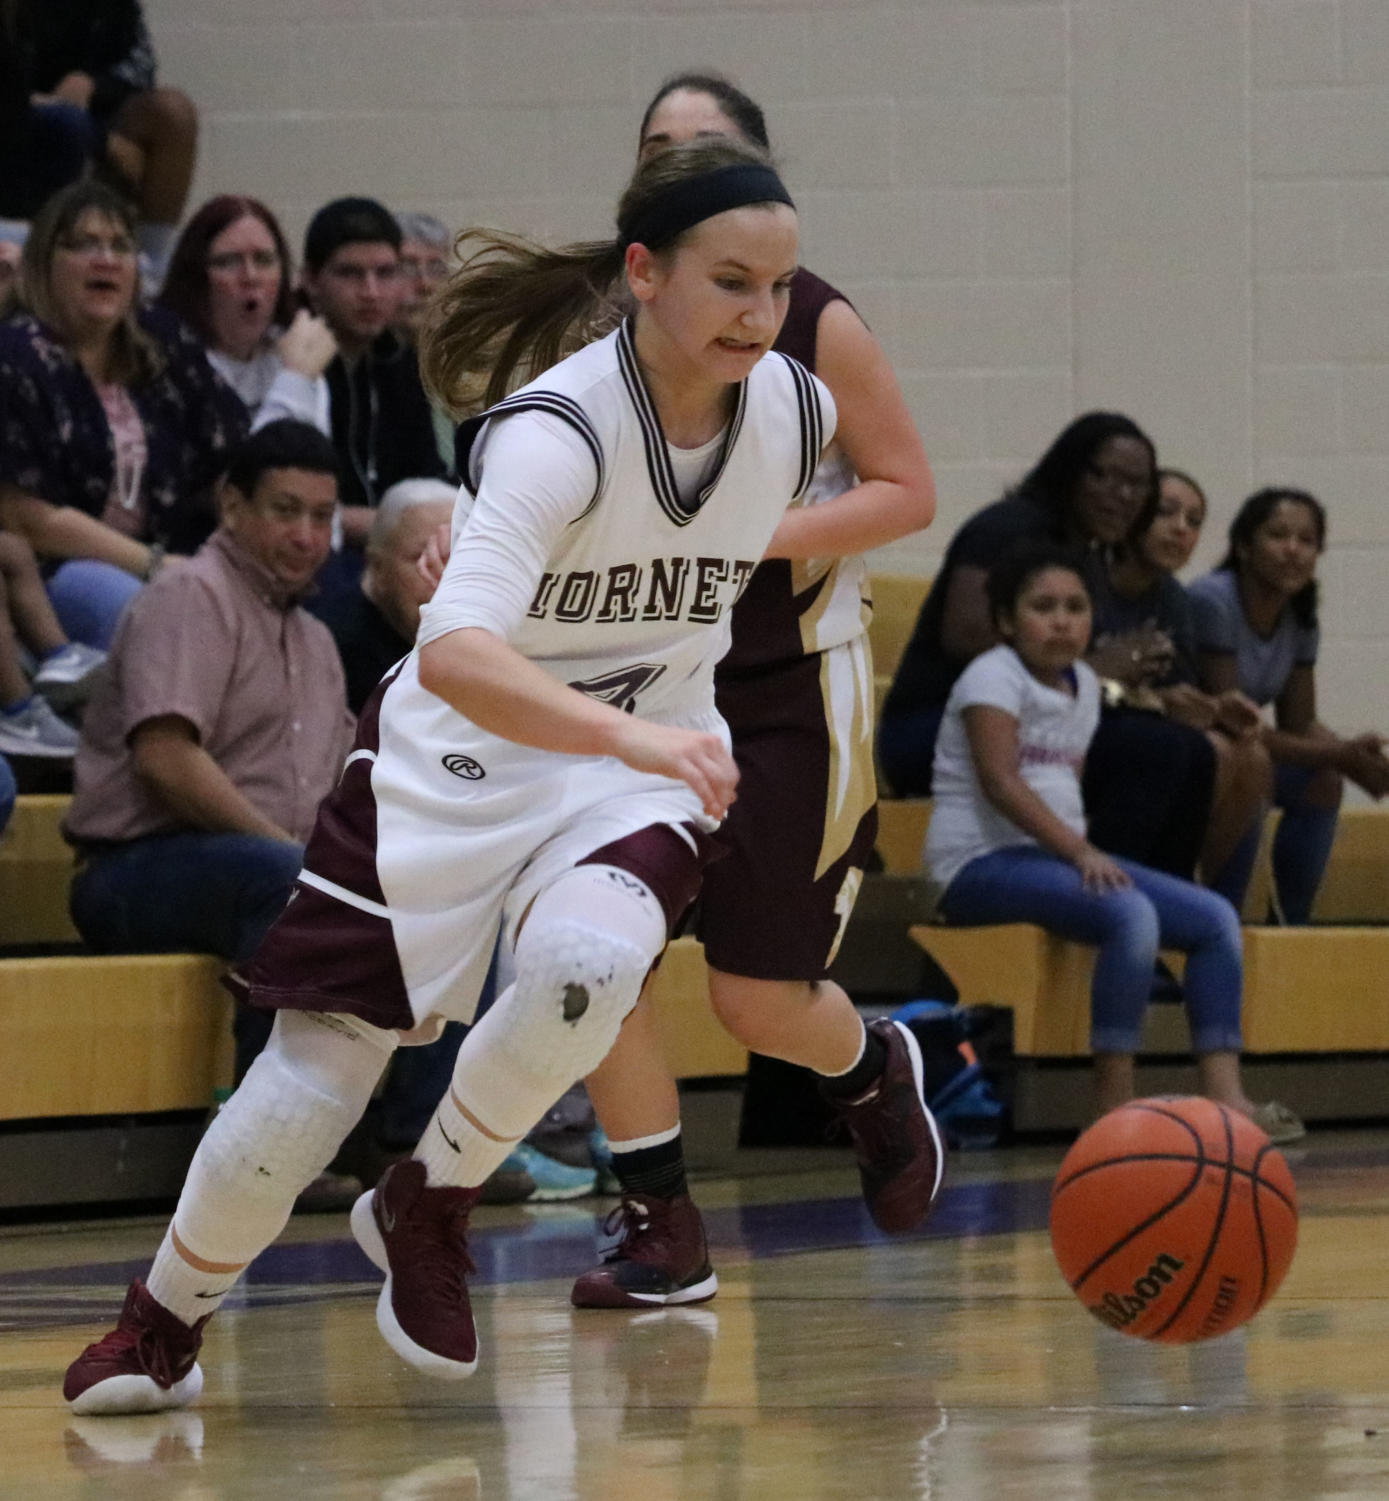 Senior Meredith Marcum brings the ball up the court against Tuloso- Midway on Feb. 20 in the  third round of the playoffs. The Hornets won, 58-33.